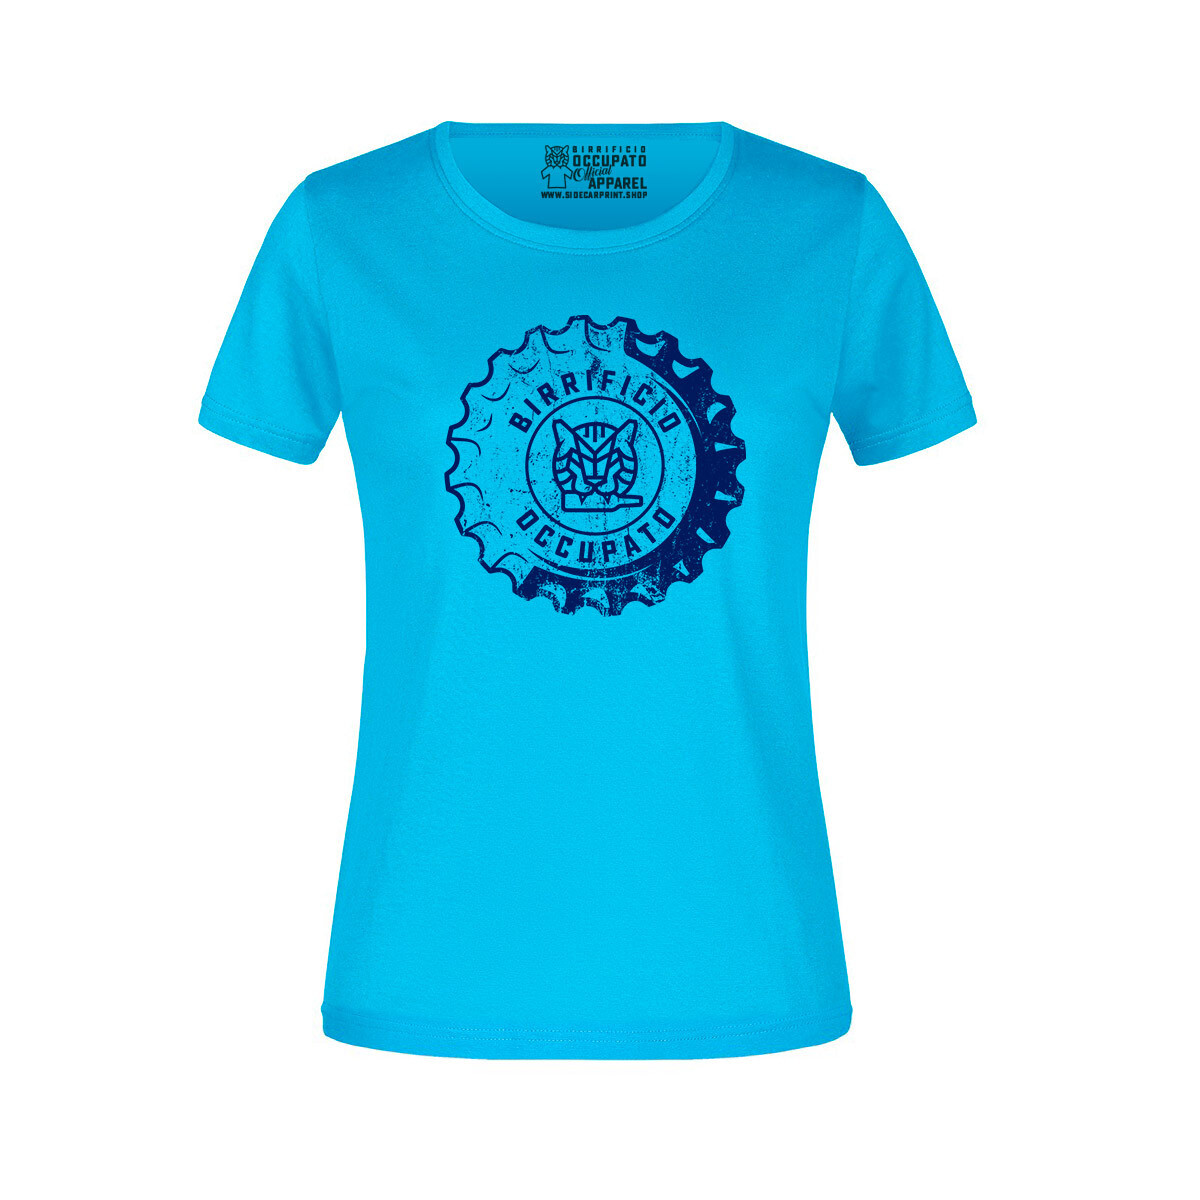 """T-shirt Donna """"Tappone"""" Turquoise - Lim.Ed. Spring 2021"""